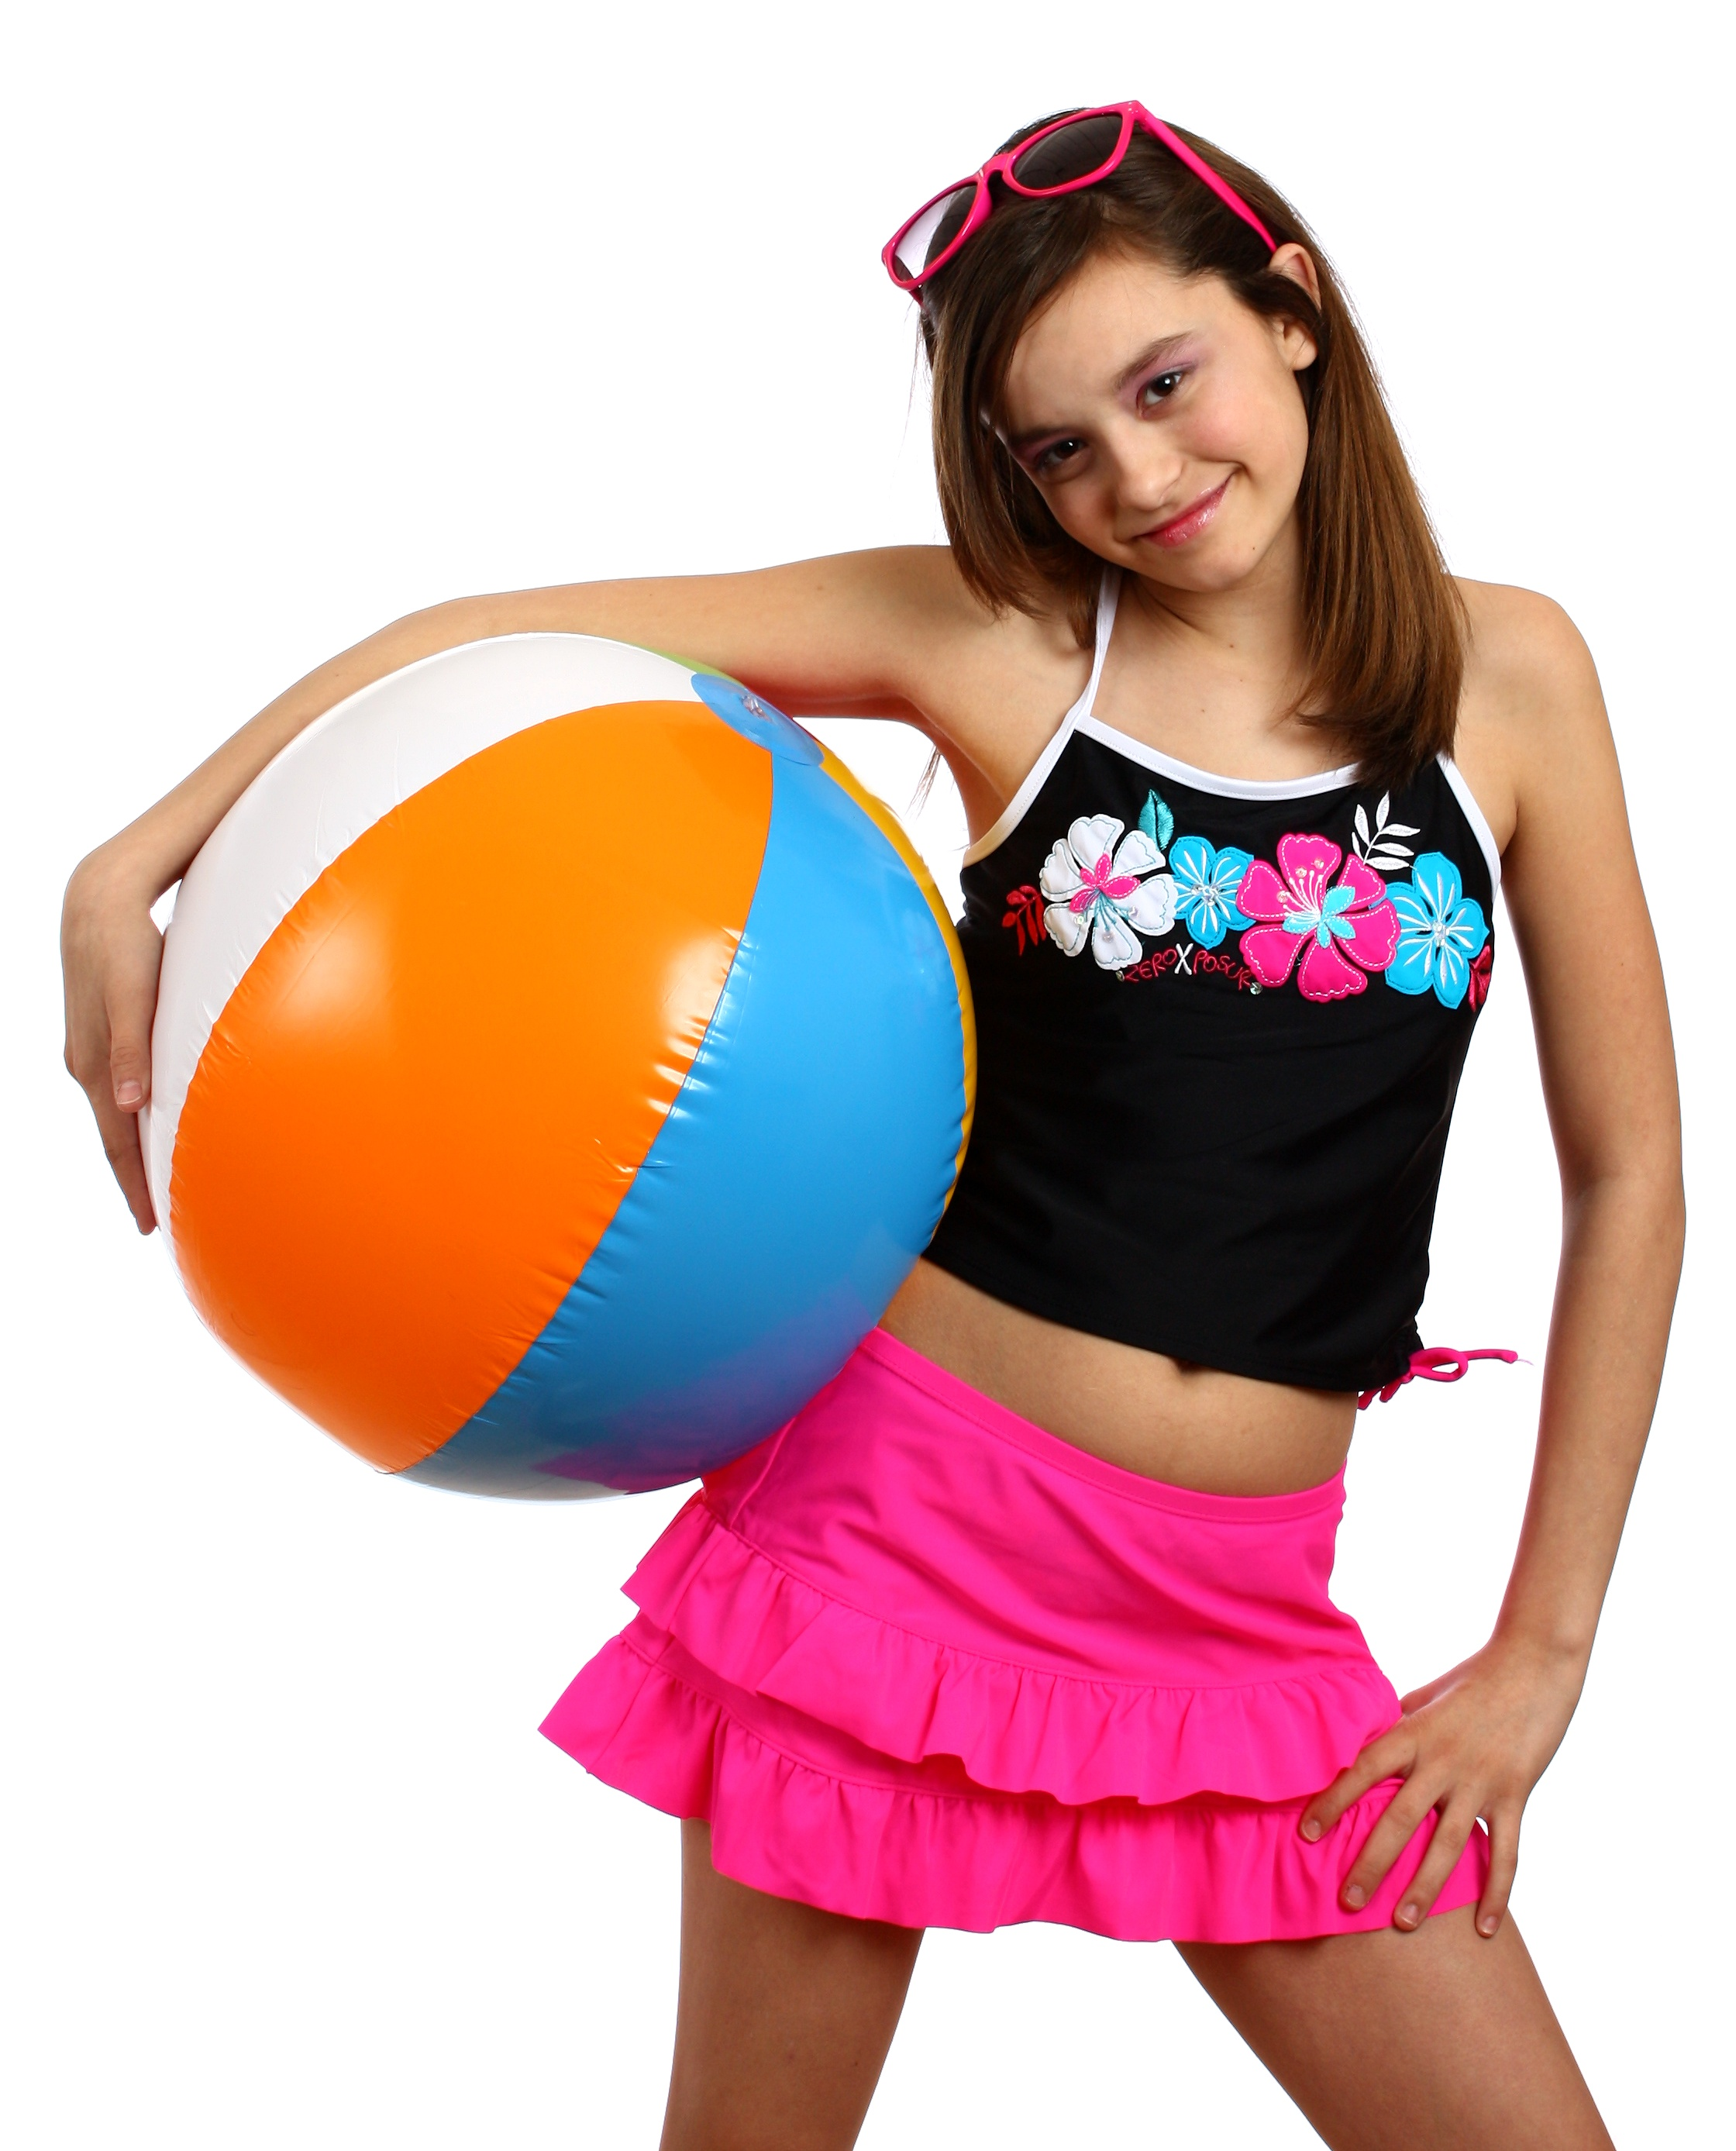 A young girl posing with a beach ball photo